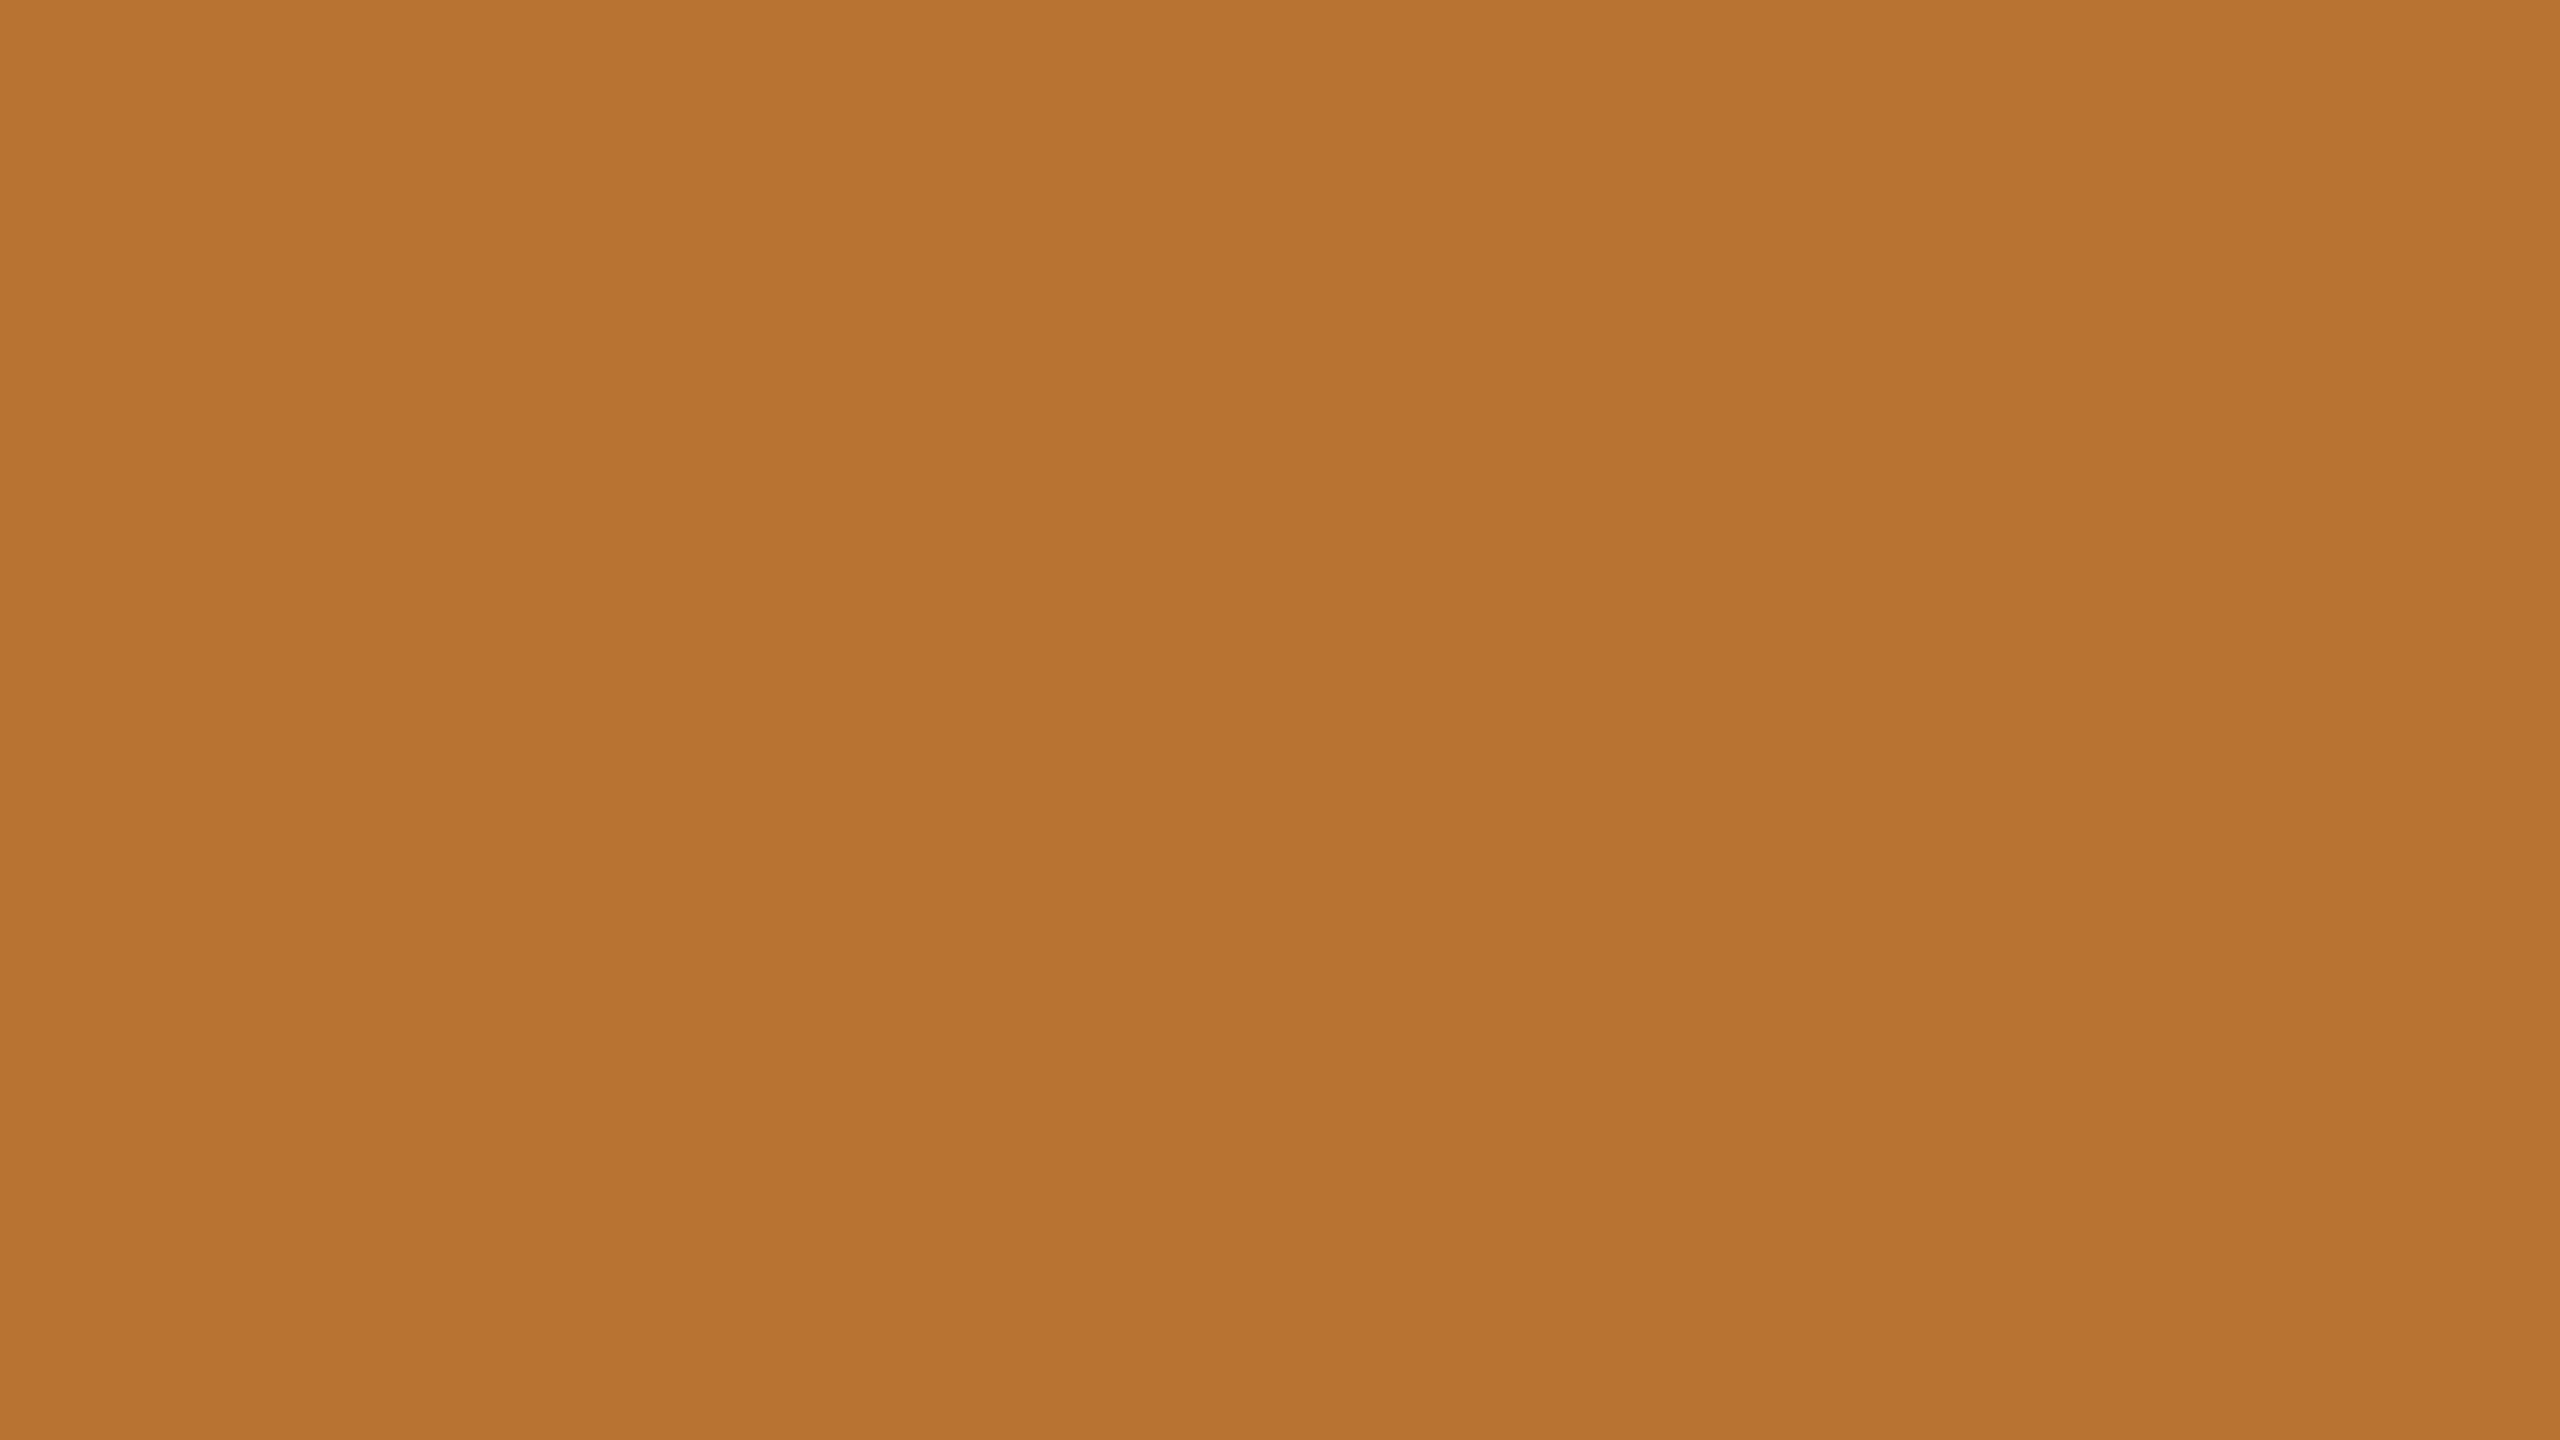 2560x1440 Copper Solid Color Background